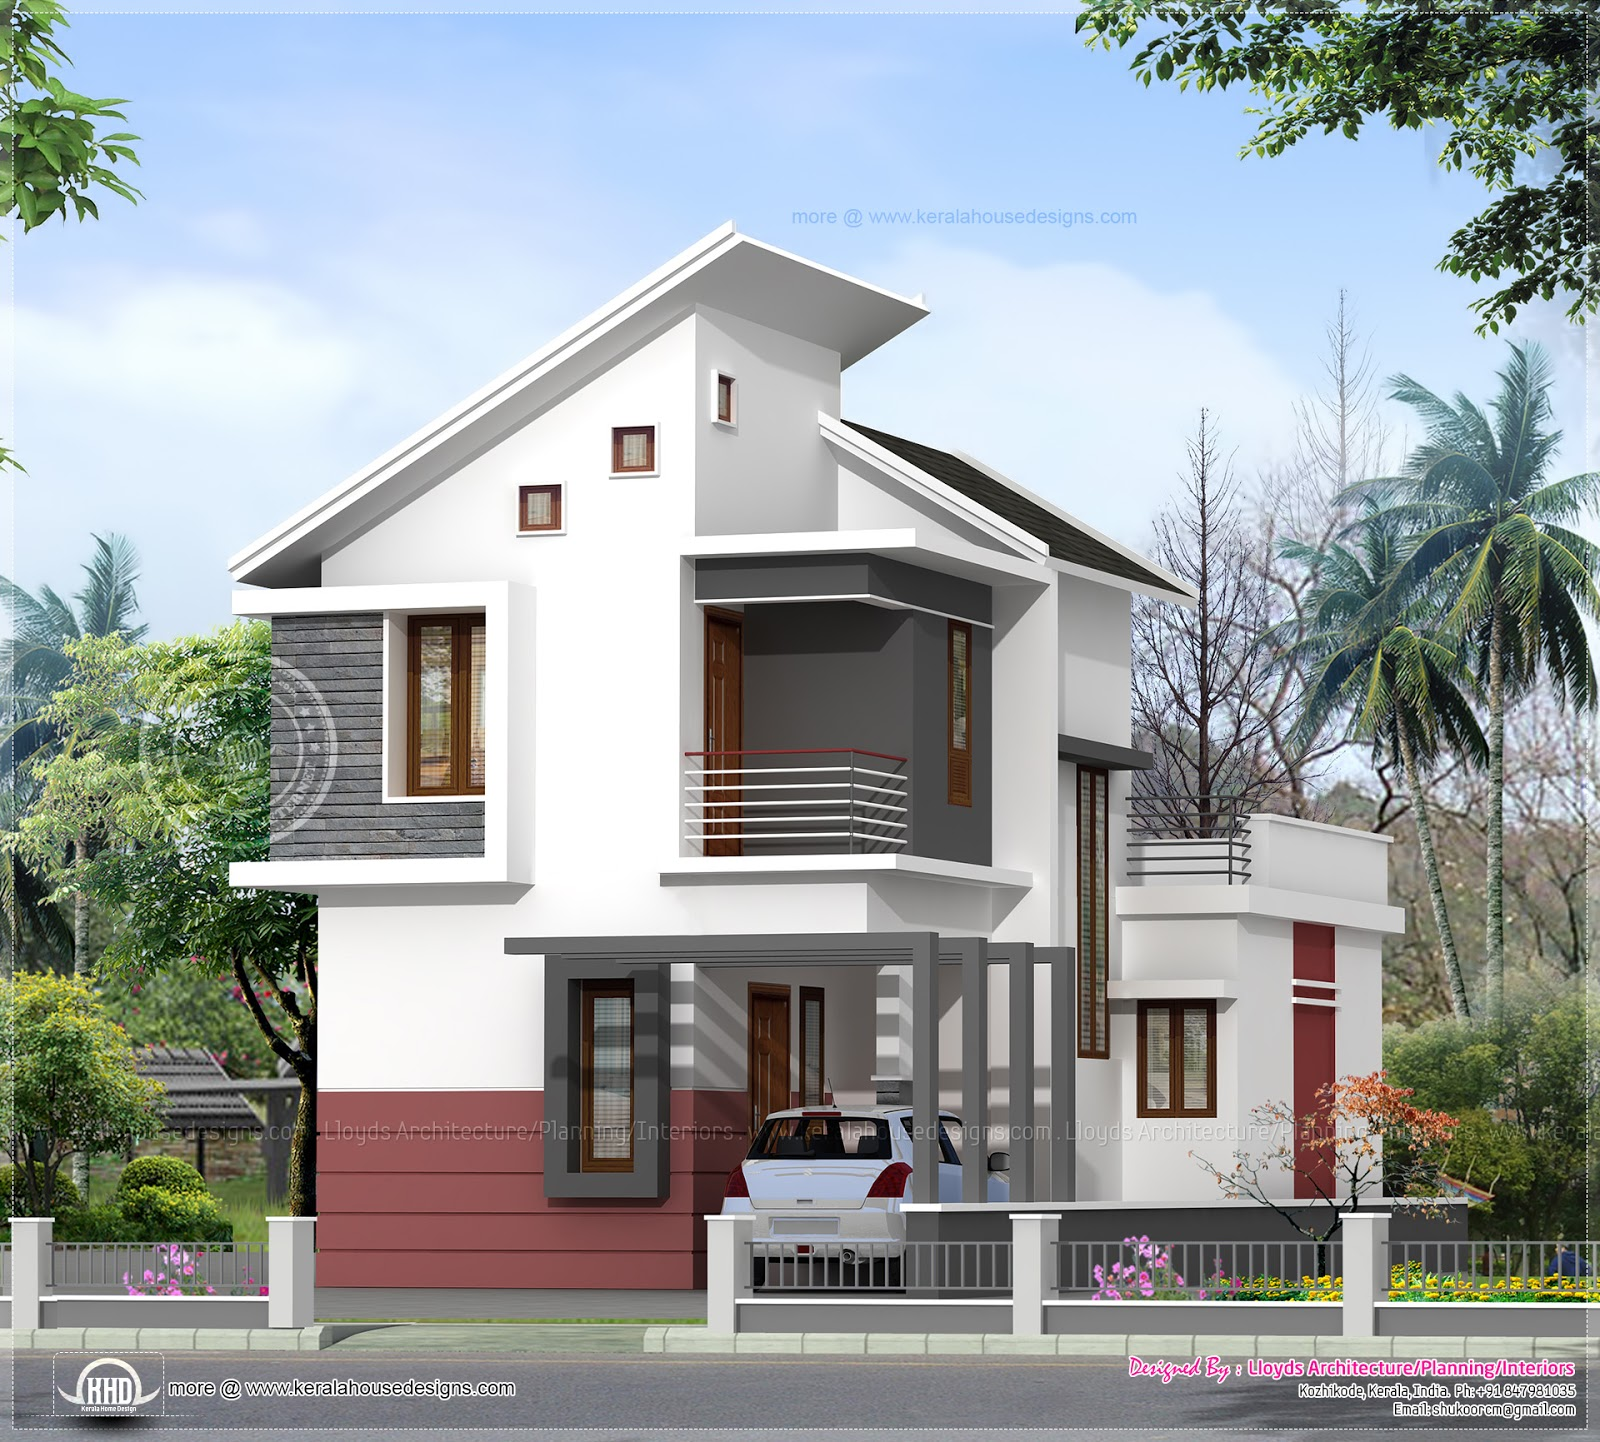 1197 sq ft 3 bedroom villa in 3 cents plot kerala home for Kerala home style 3 bedroom